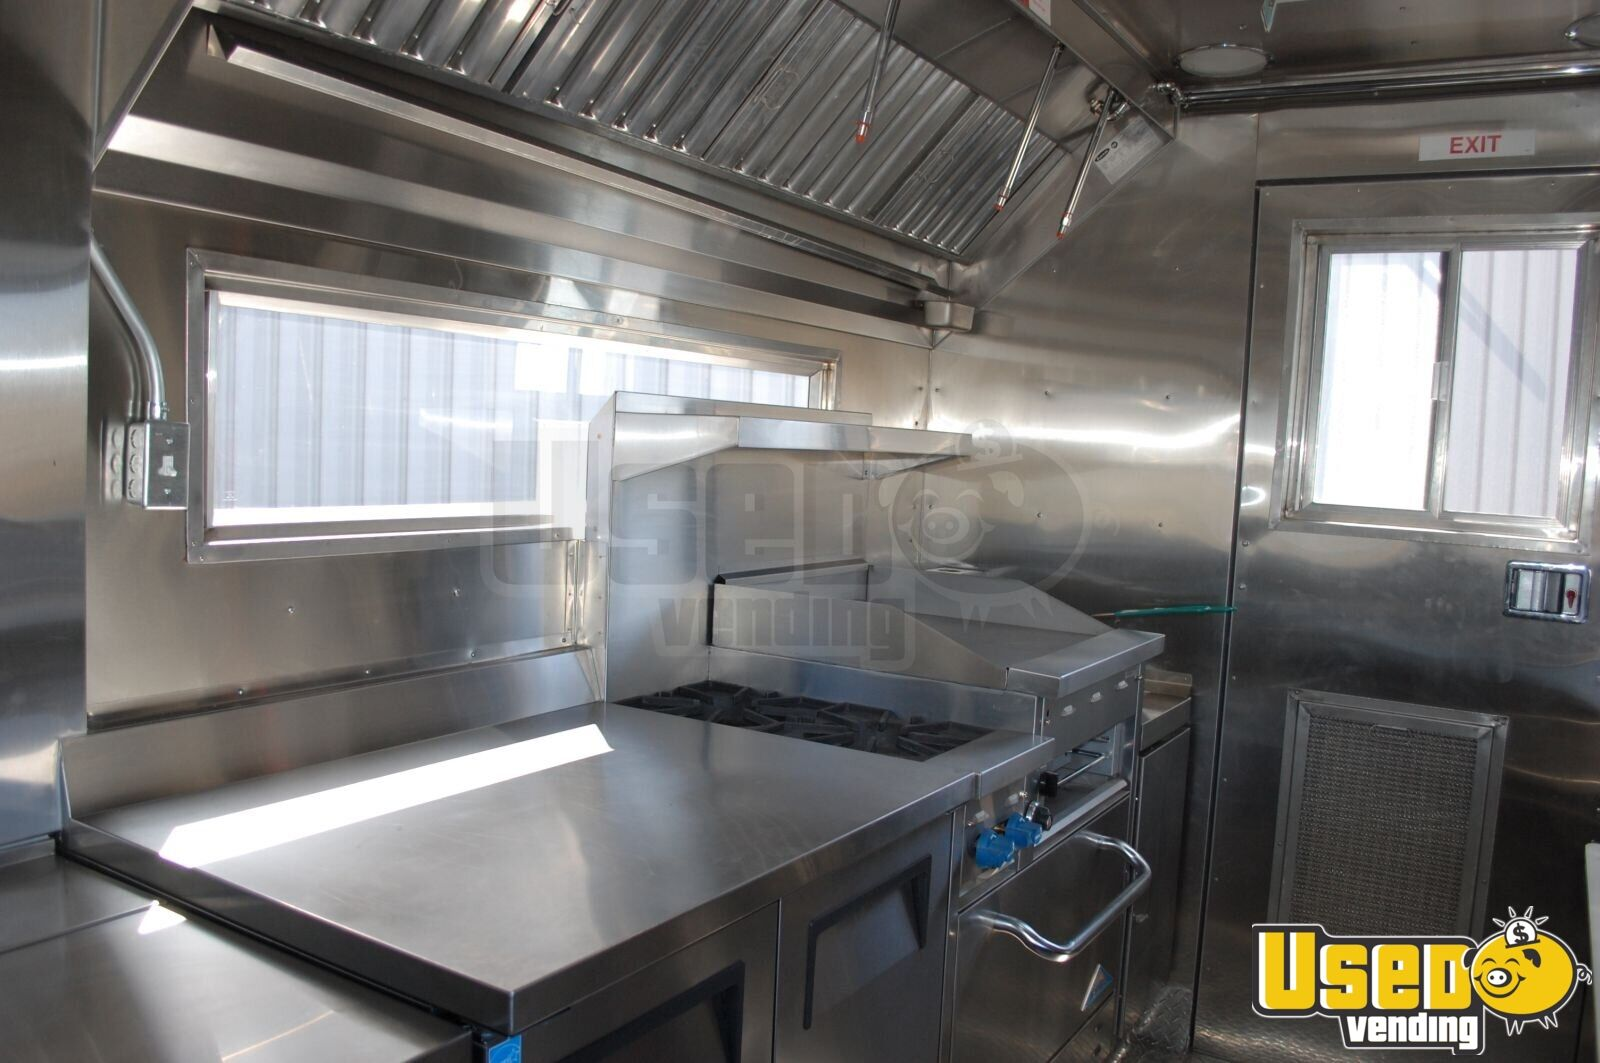 used commercial kitchen equipment buyers stainless steel trash can isuzu food truck for sale indiana loaded mobile